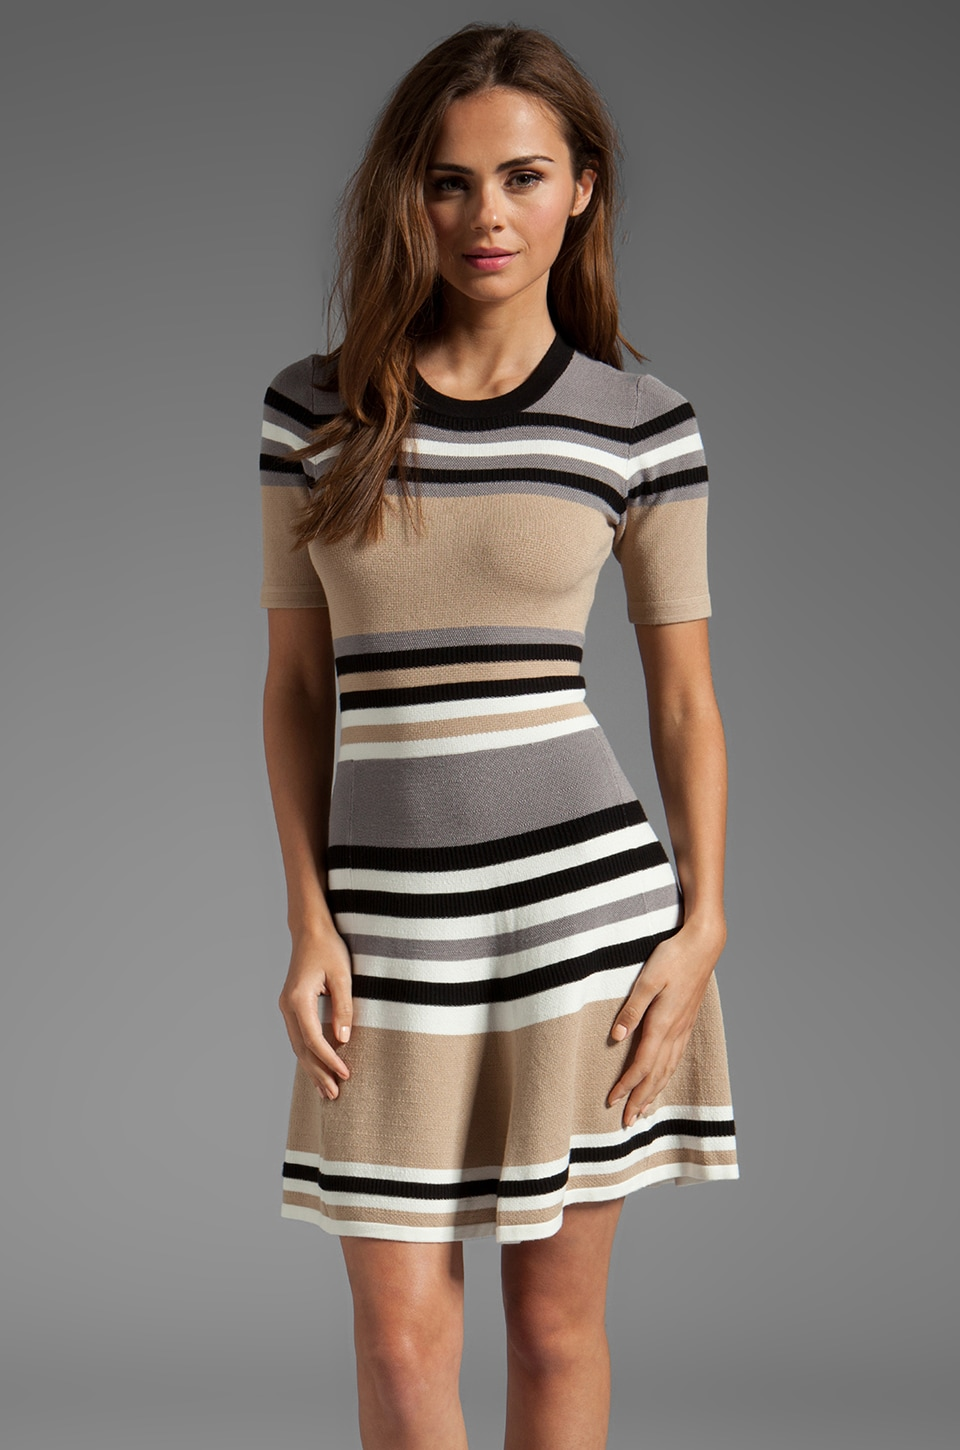 Torn by Ronny Kobo Melody Dress in Alternate Stripes